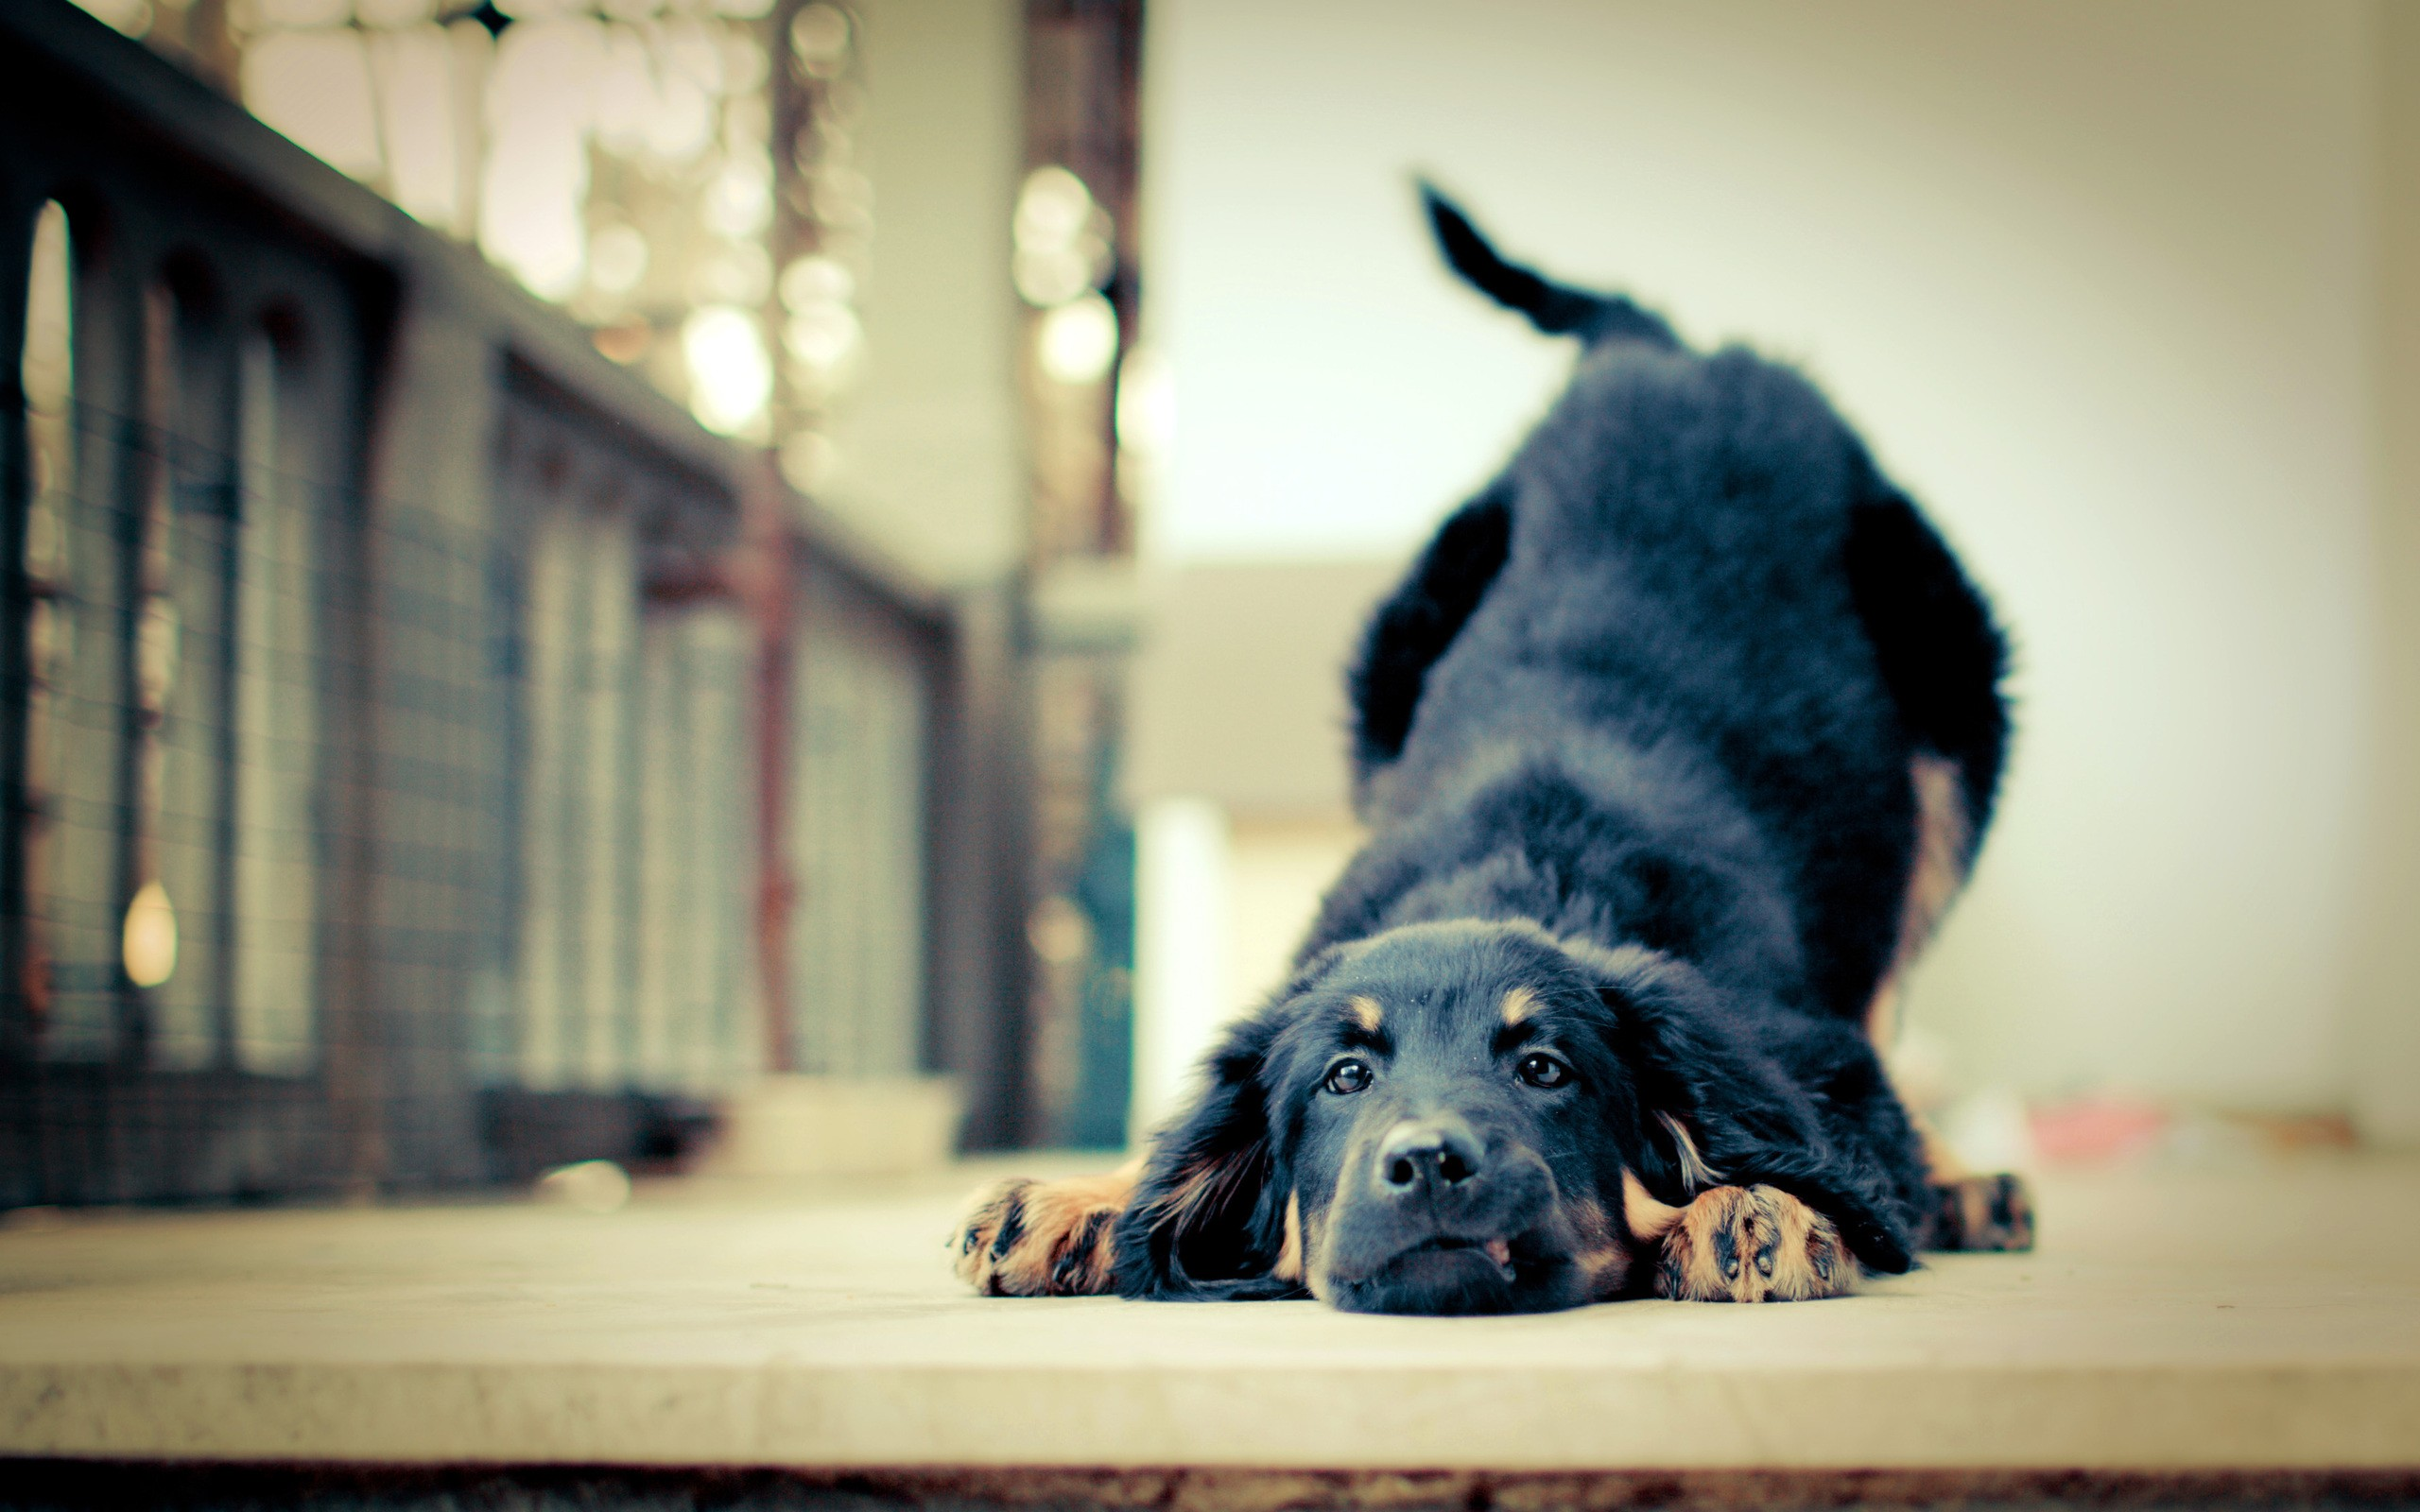 happy dog background 39358 2560x1600 px ~ hdwallsource